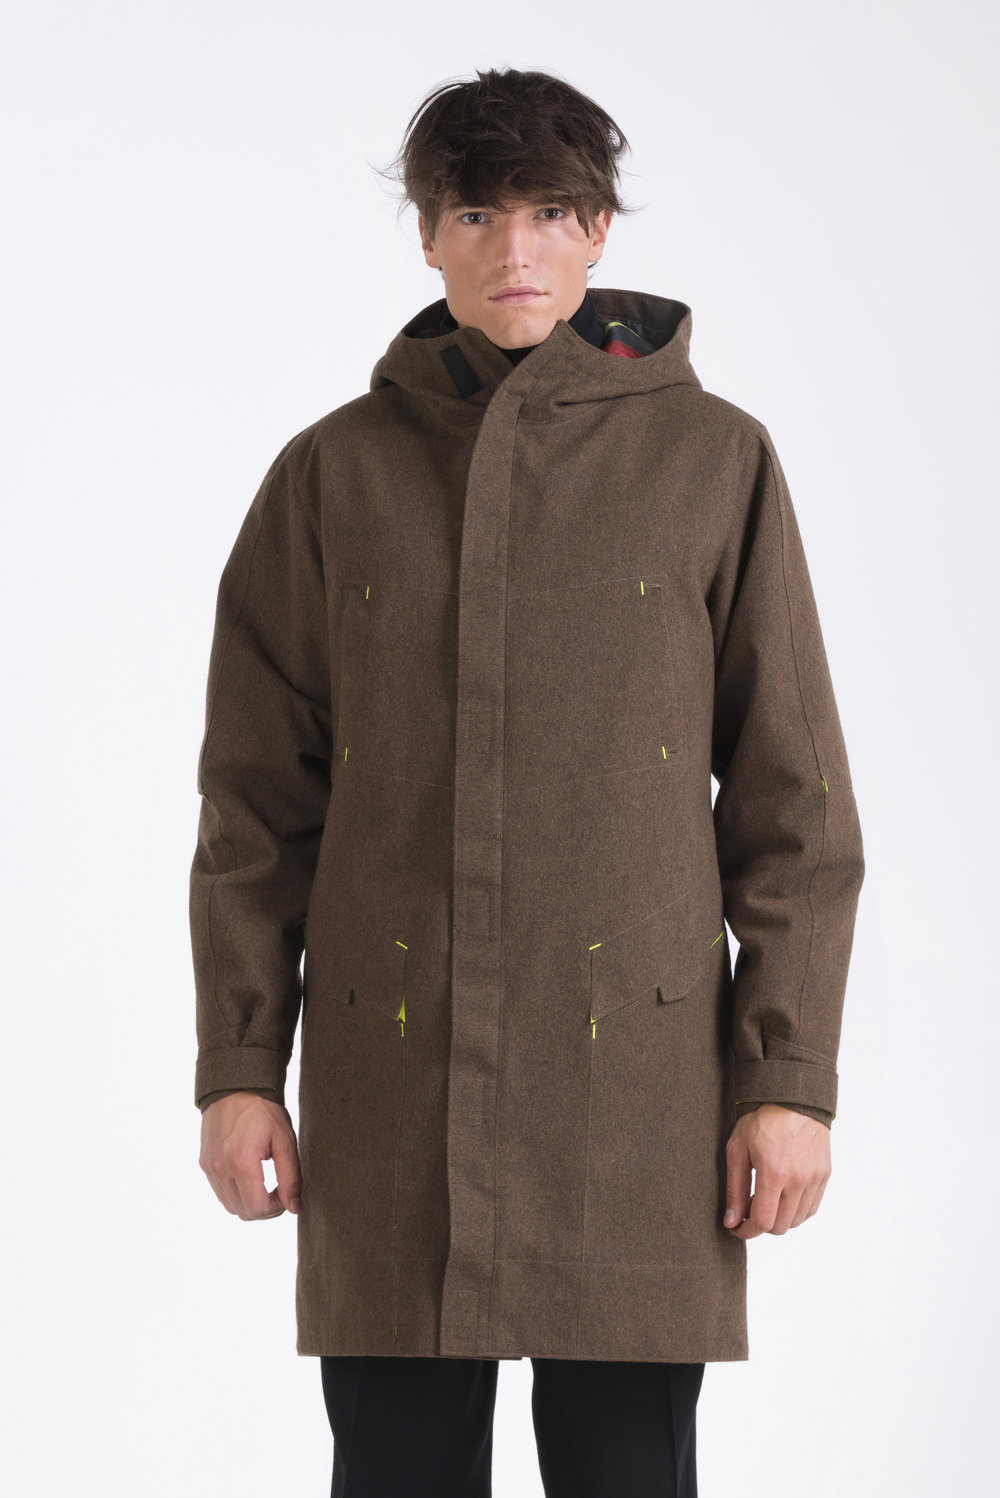 oneculture Heavy parka coat 2.jpg